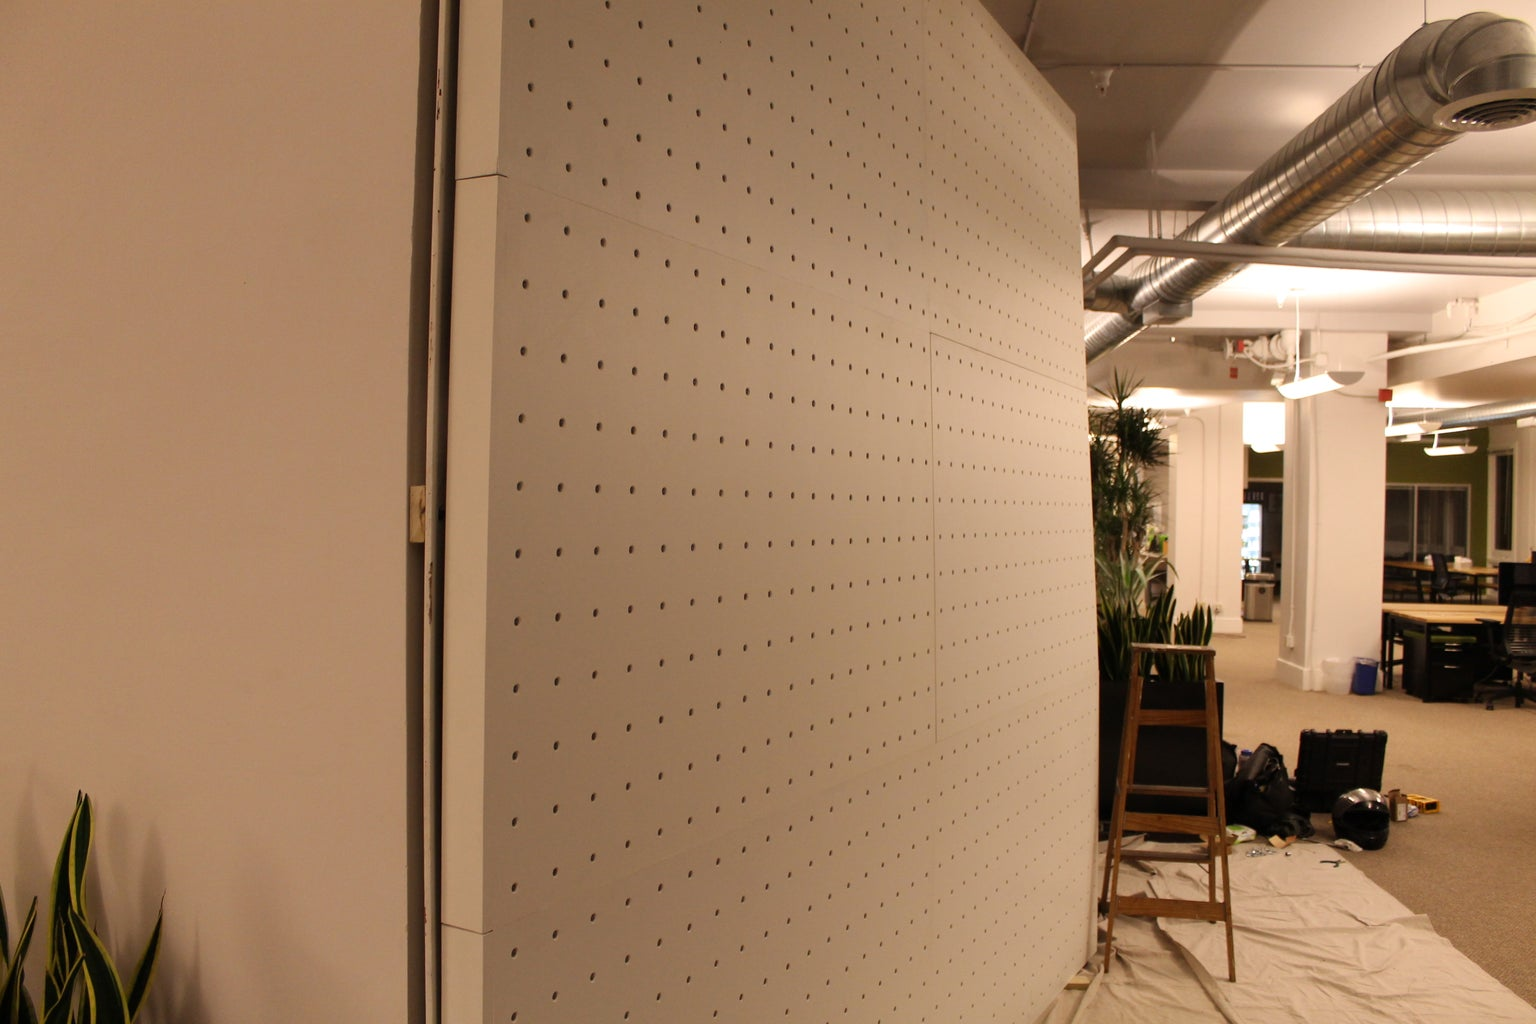 Assemble and Complete Wall Configuration